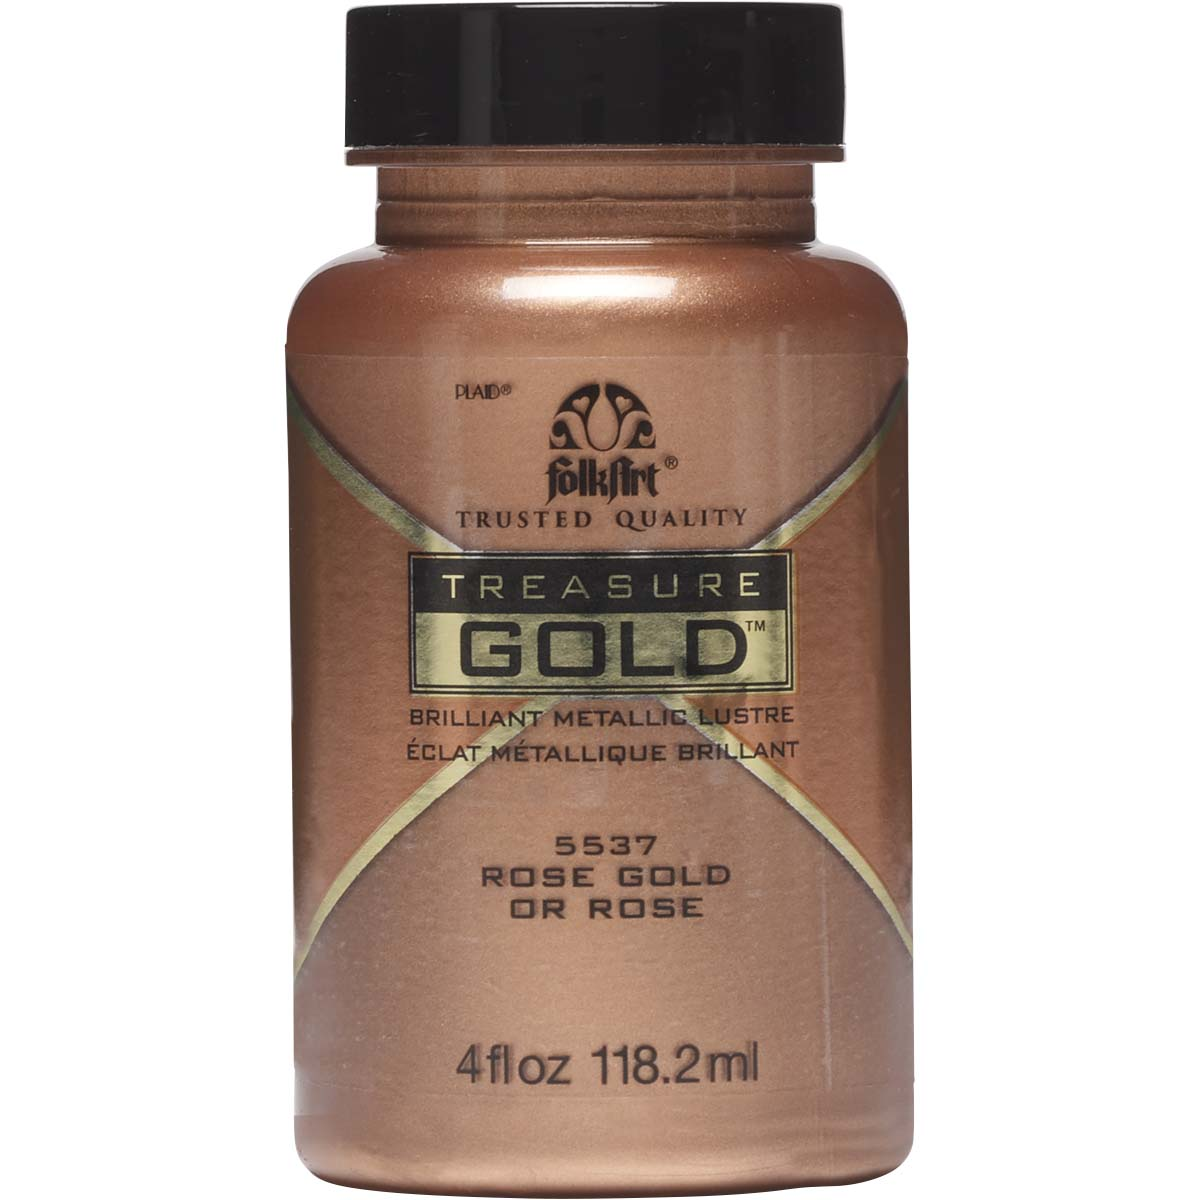 FolkArt ® Treasure Gold™ - Rose Gold, 4 oz. - 5537